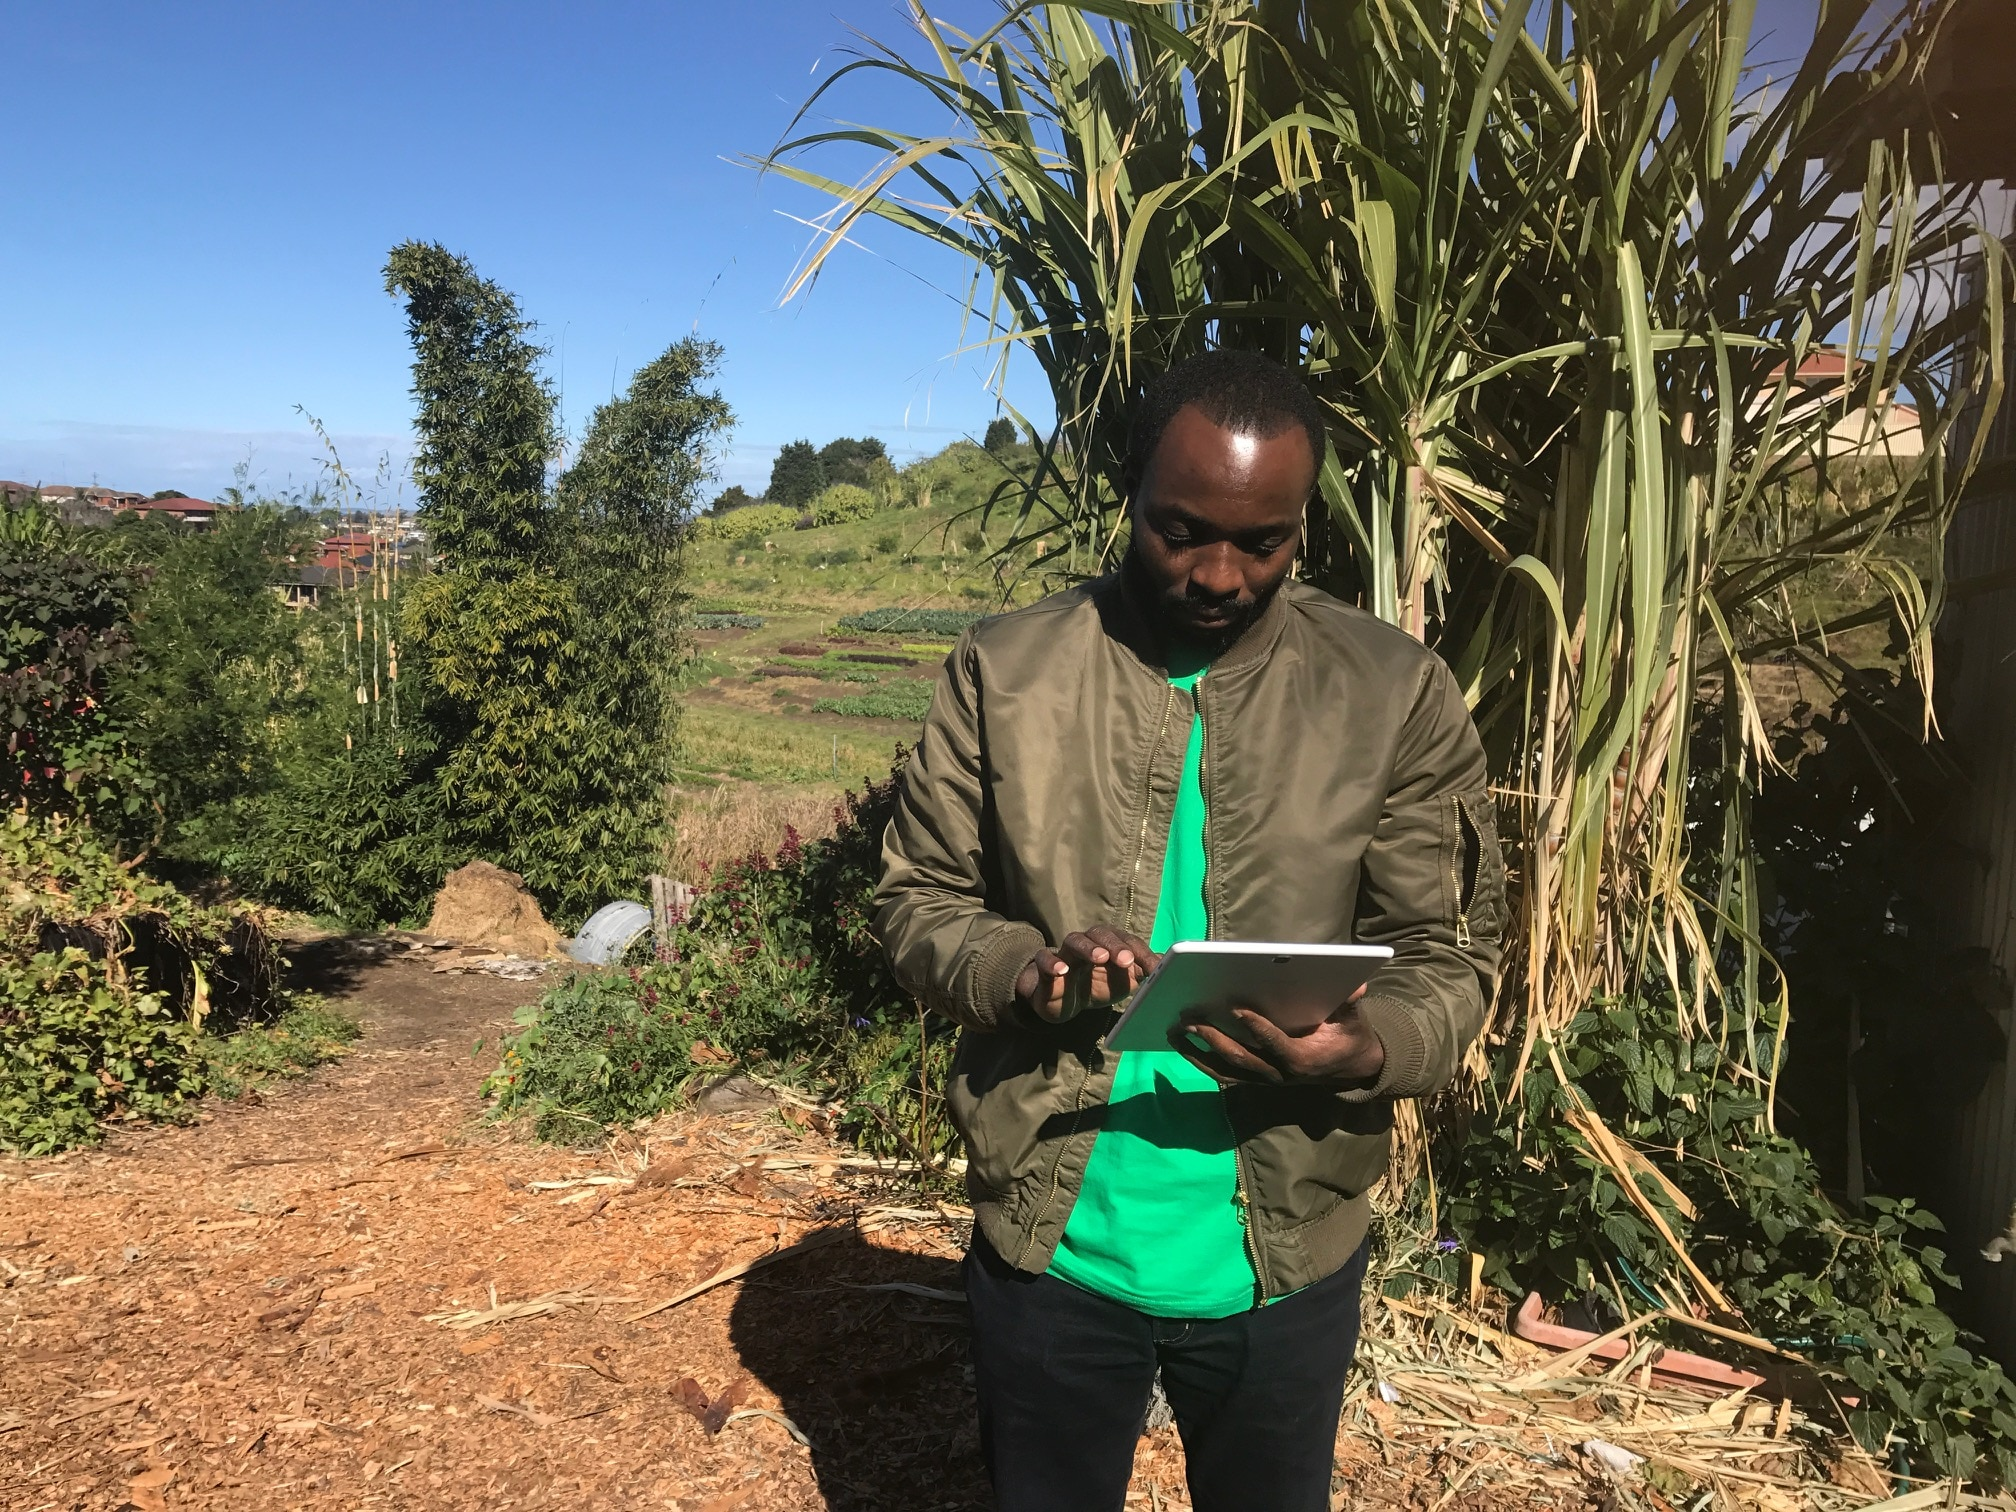 Emmanuel Bakenga began working with Green Connect as a general team member but has since been promoted to the role of Community Support Manager